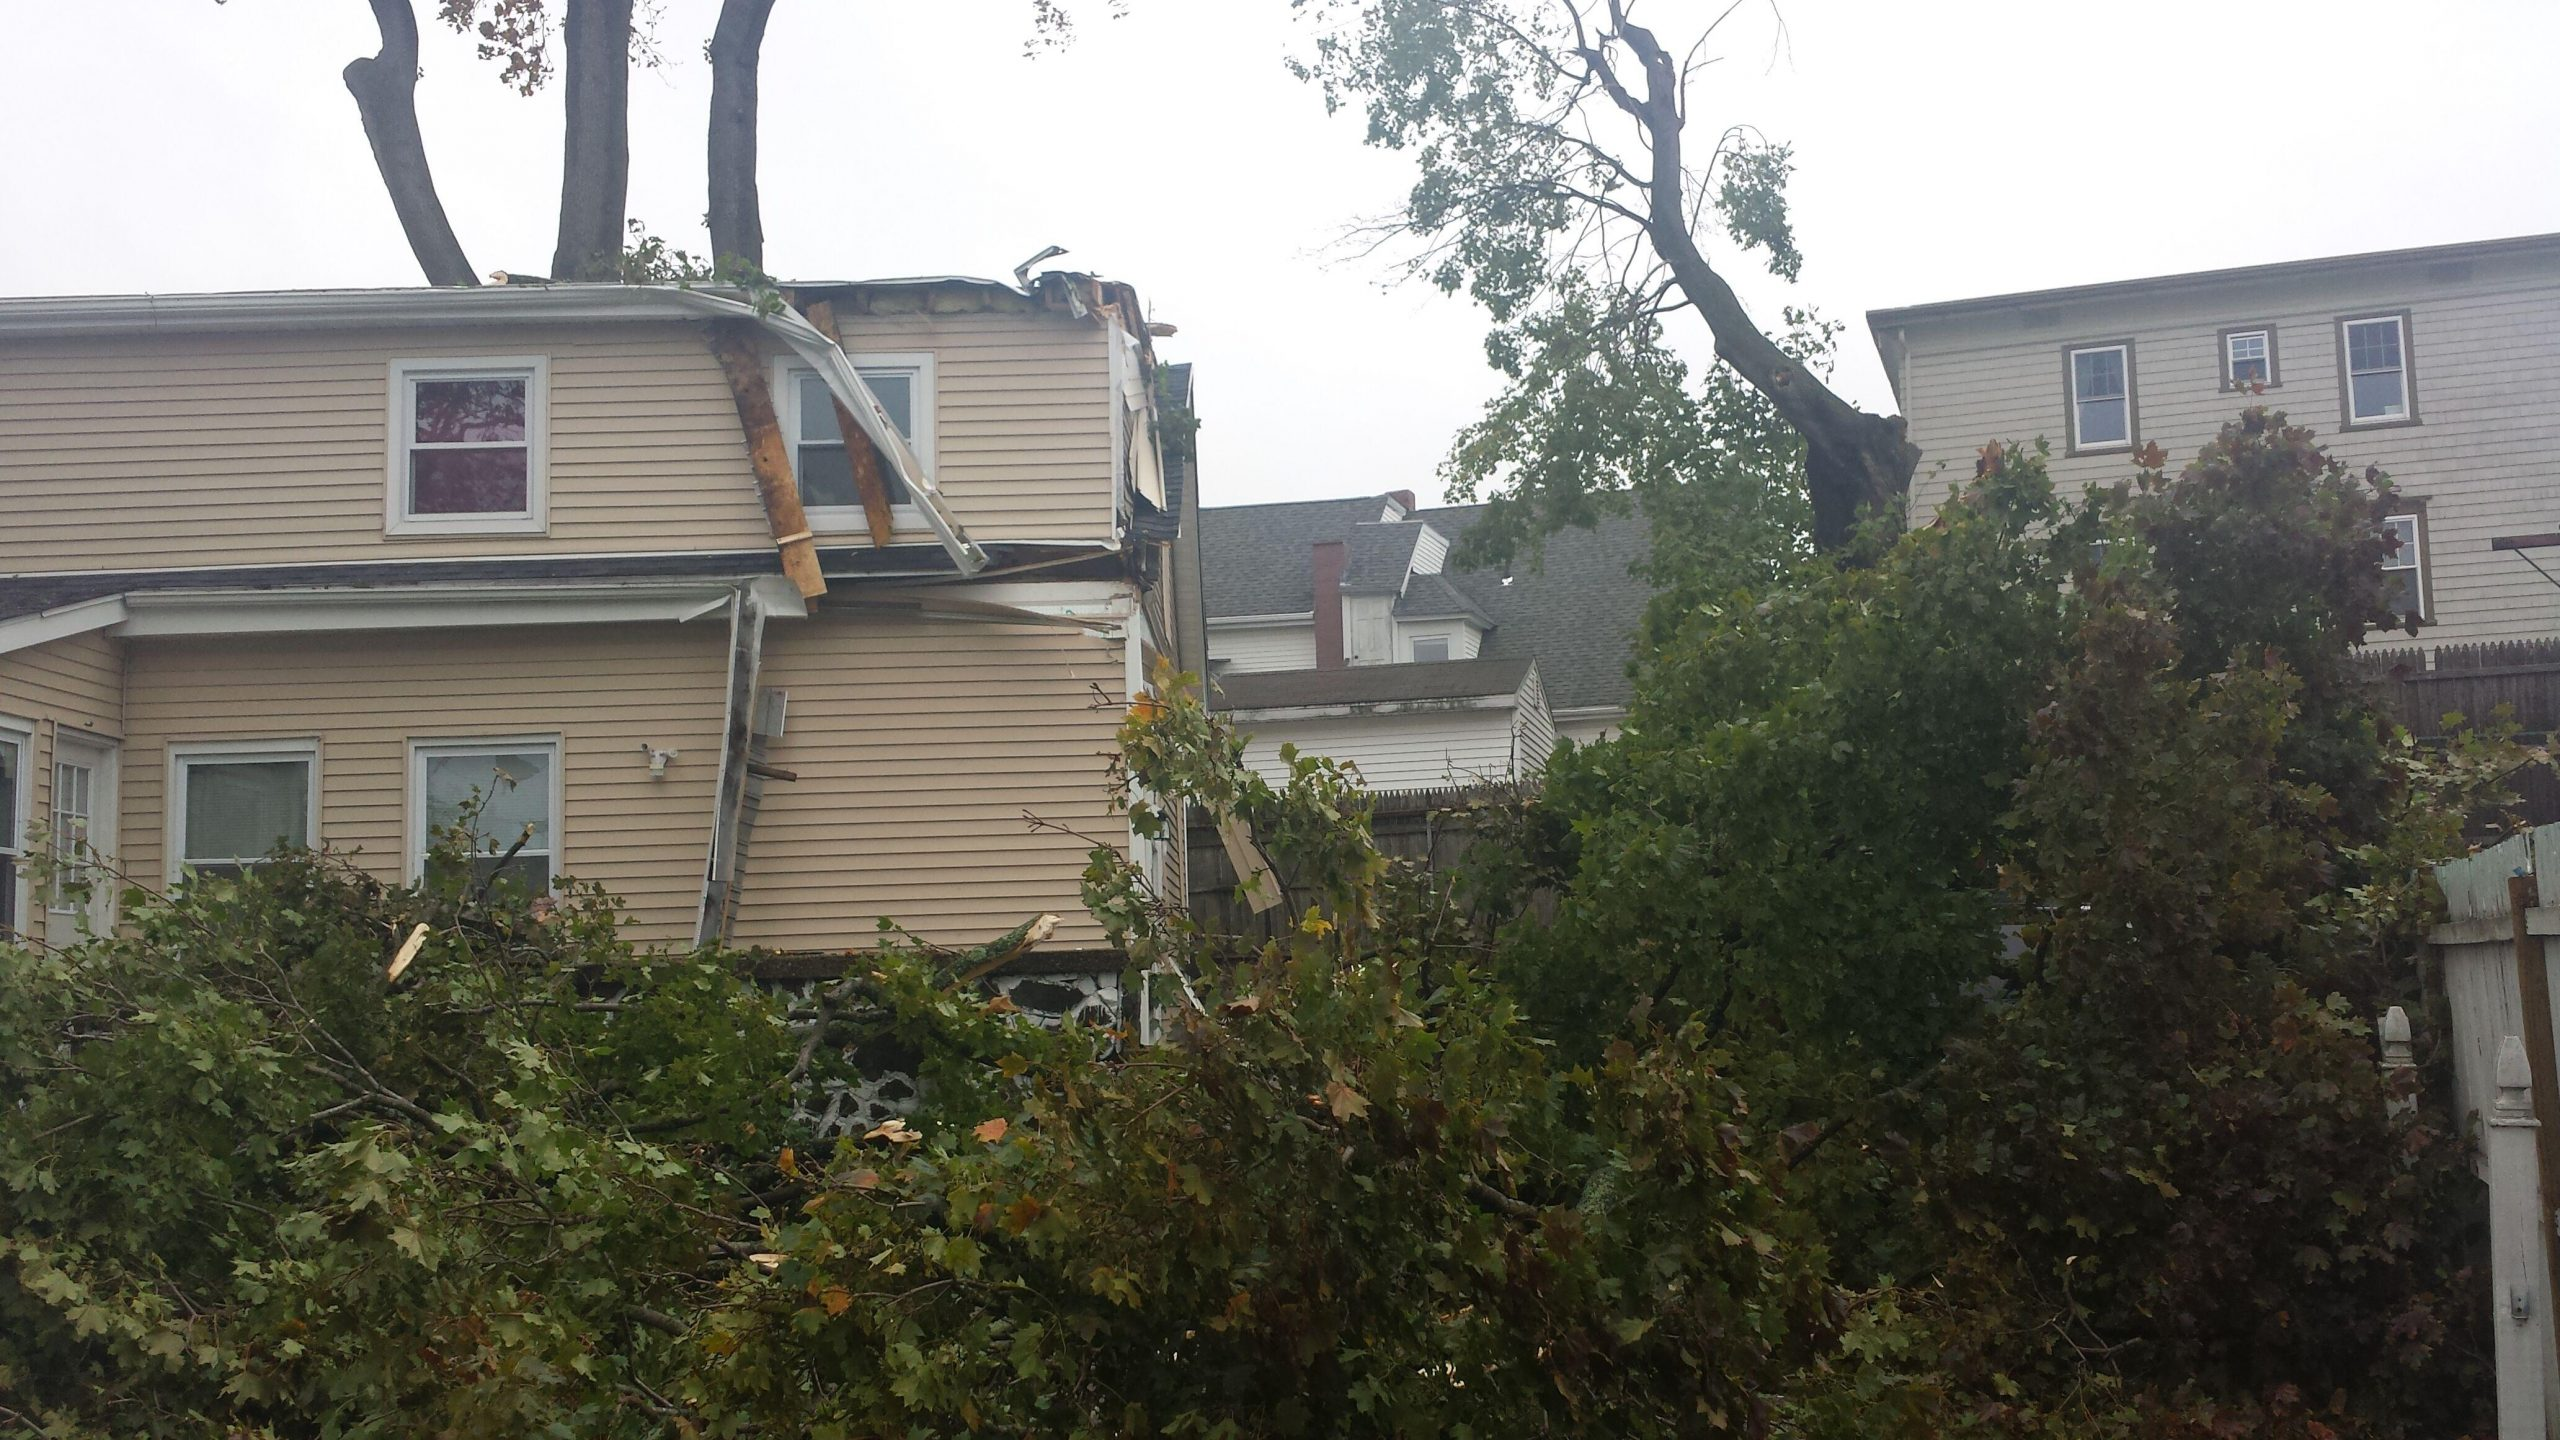 Tree collapsed on home after heavy wind